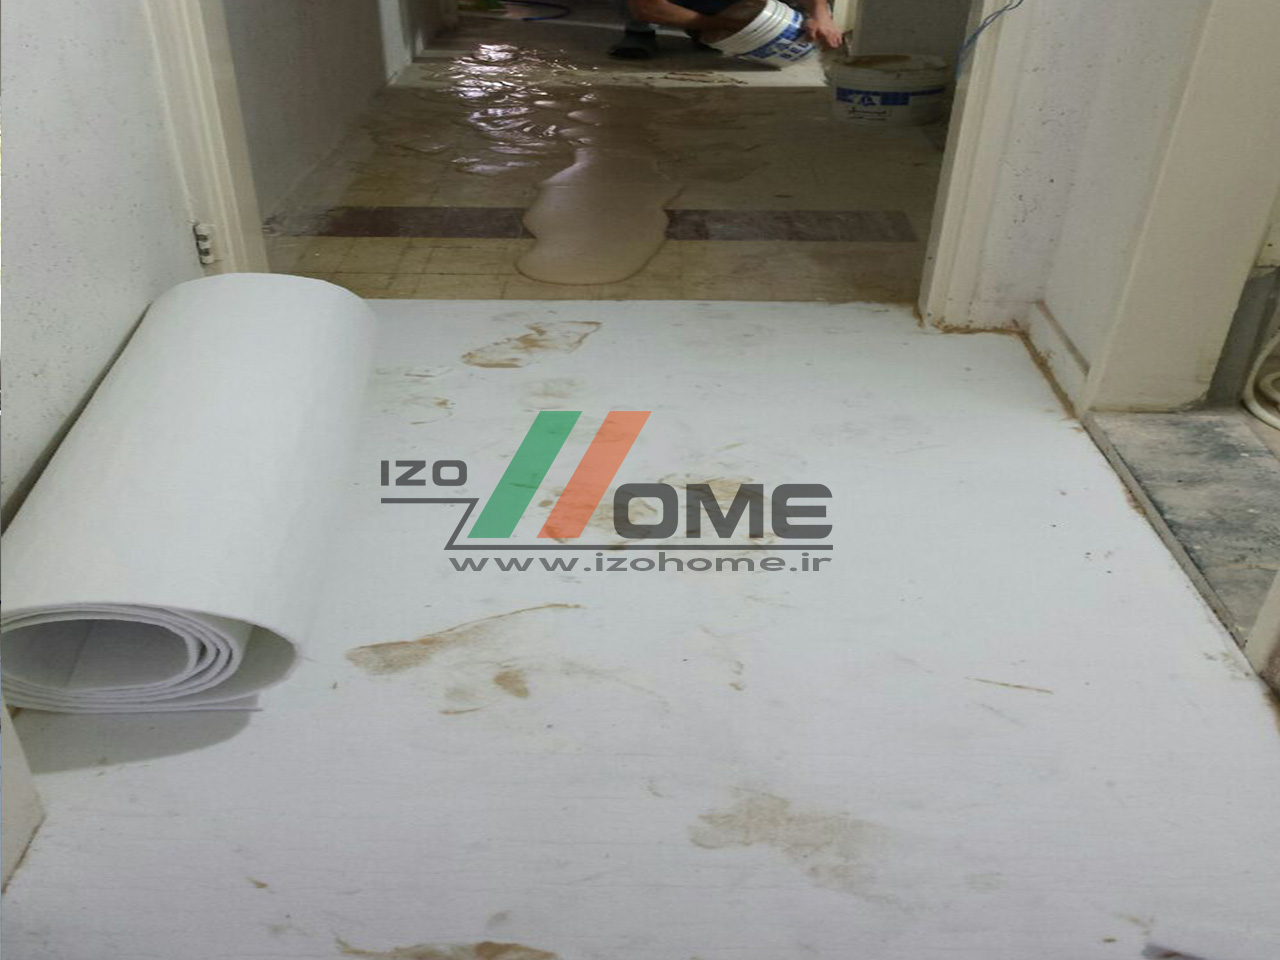 izohome51 - Sound insulation for the floor